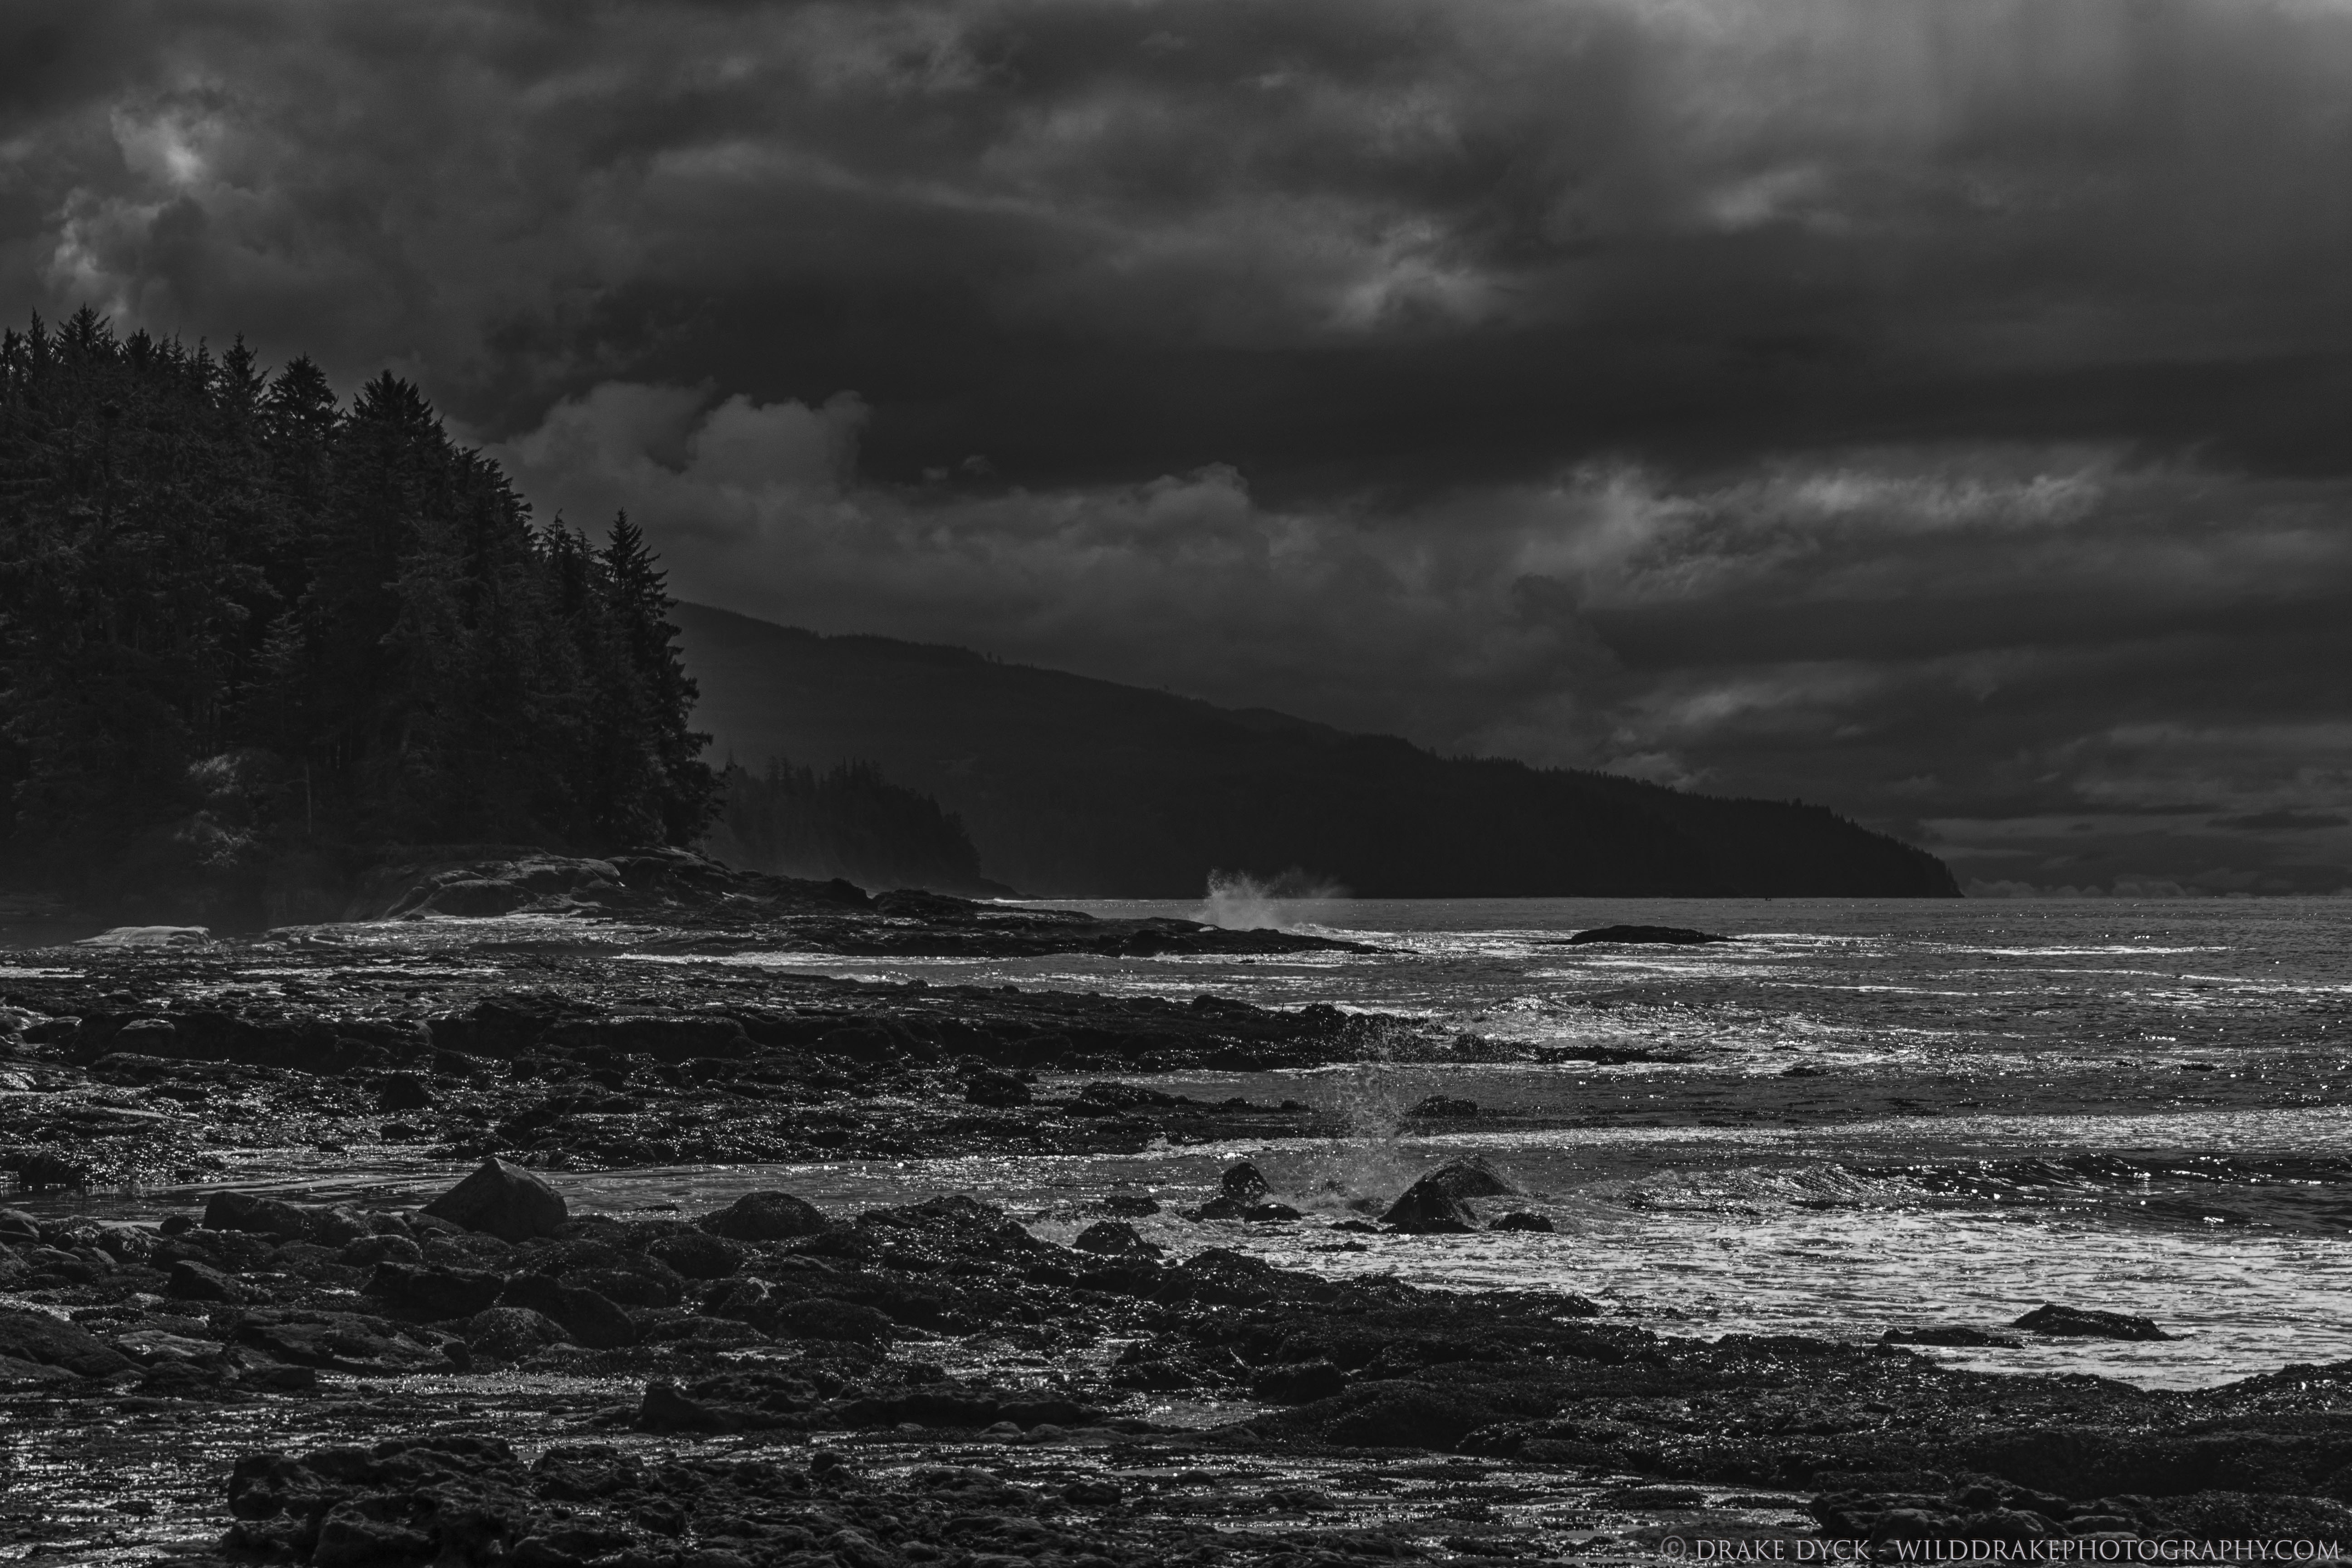 black and white image of Botanical Beach showing rocky shore and some trees under dark clouds